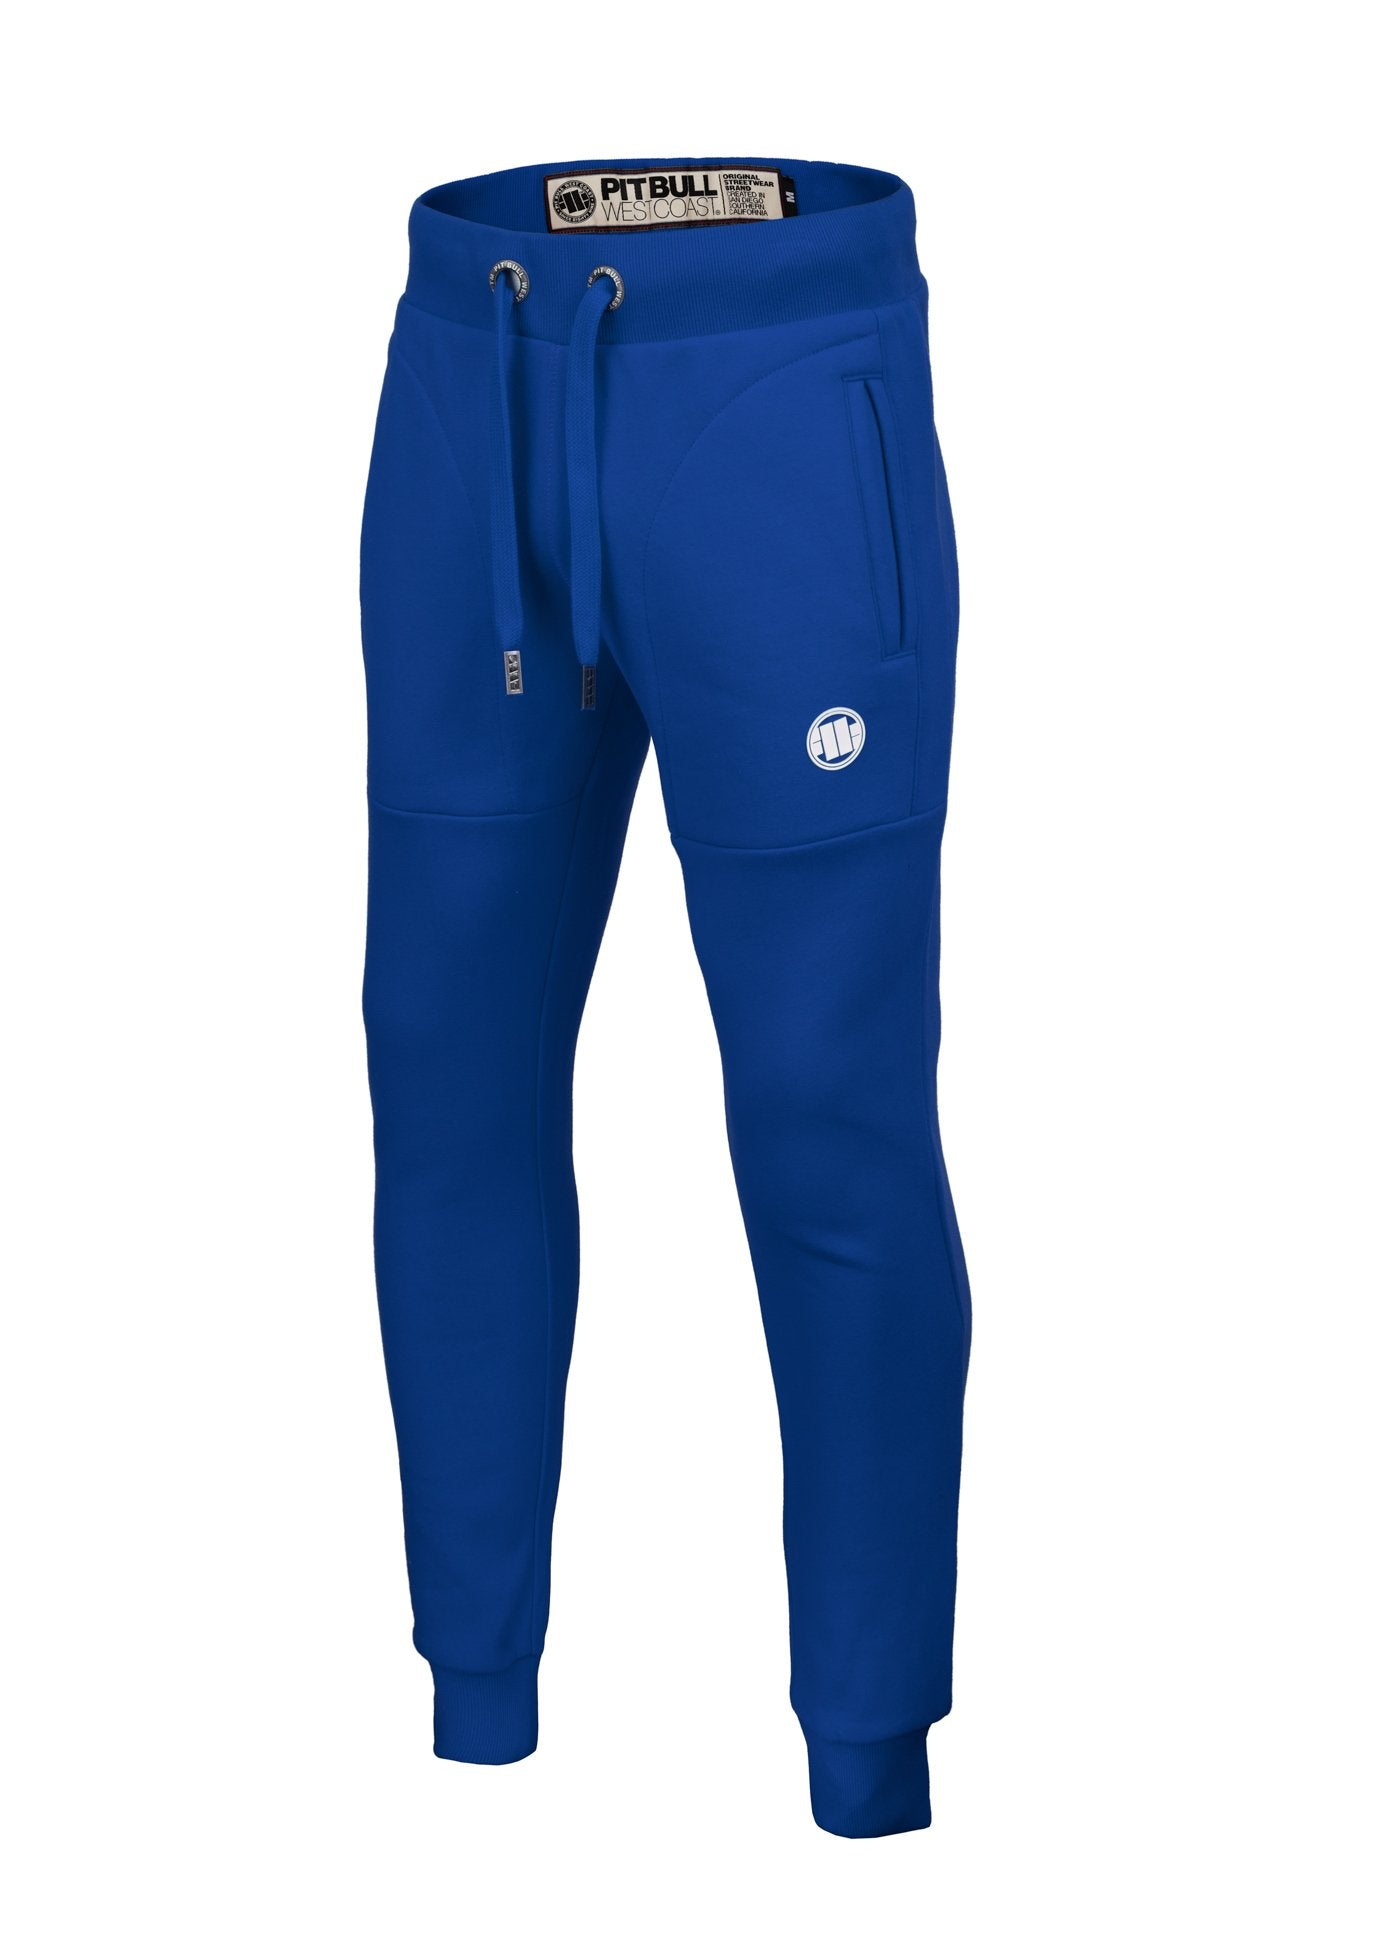 TRACK PANTS SMALL LOGO ROYAL BLUE - pitbullwestcoast